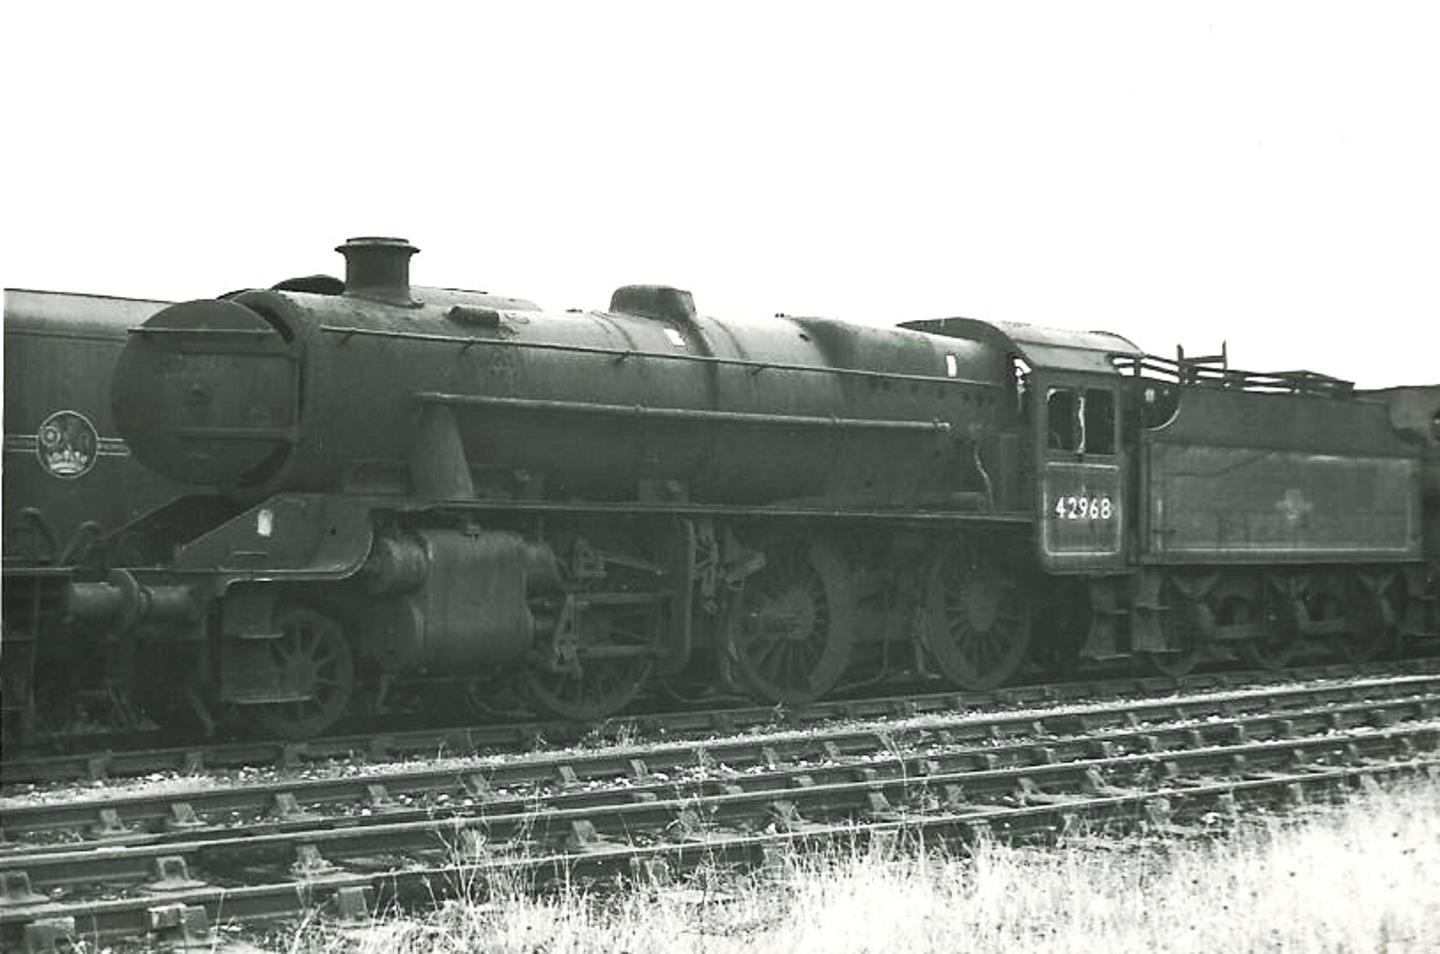 42968 at Barry Scrapyard in July 1968 // Credit Hugh Llewelyn